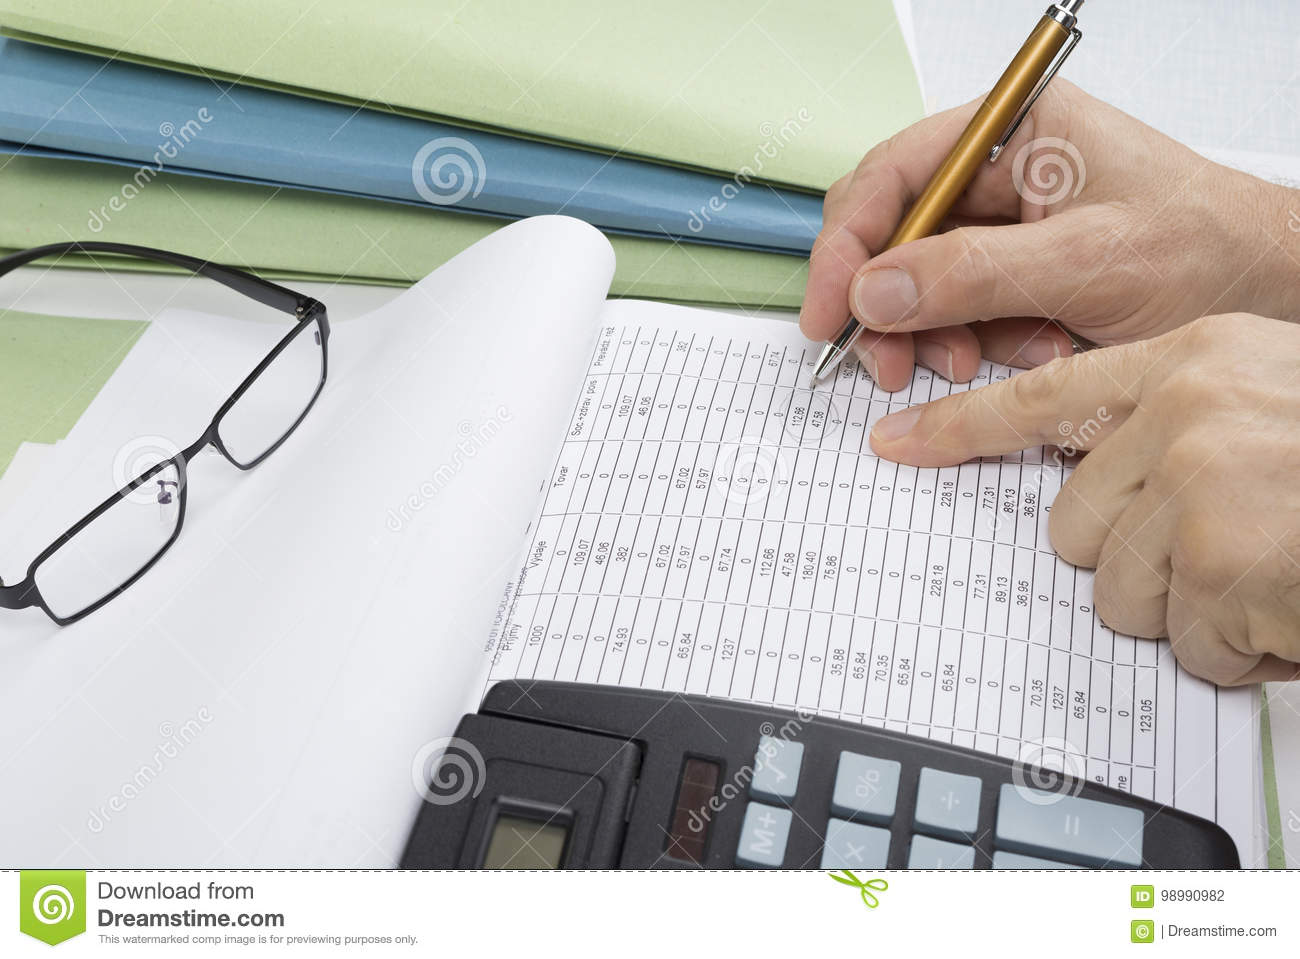 Bookkeeper or financial inspector making report, calculating or checking balance. Audit concept.